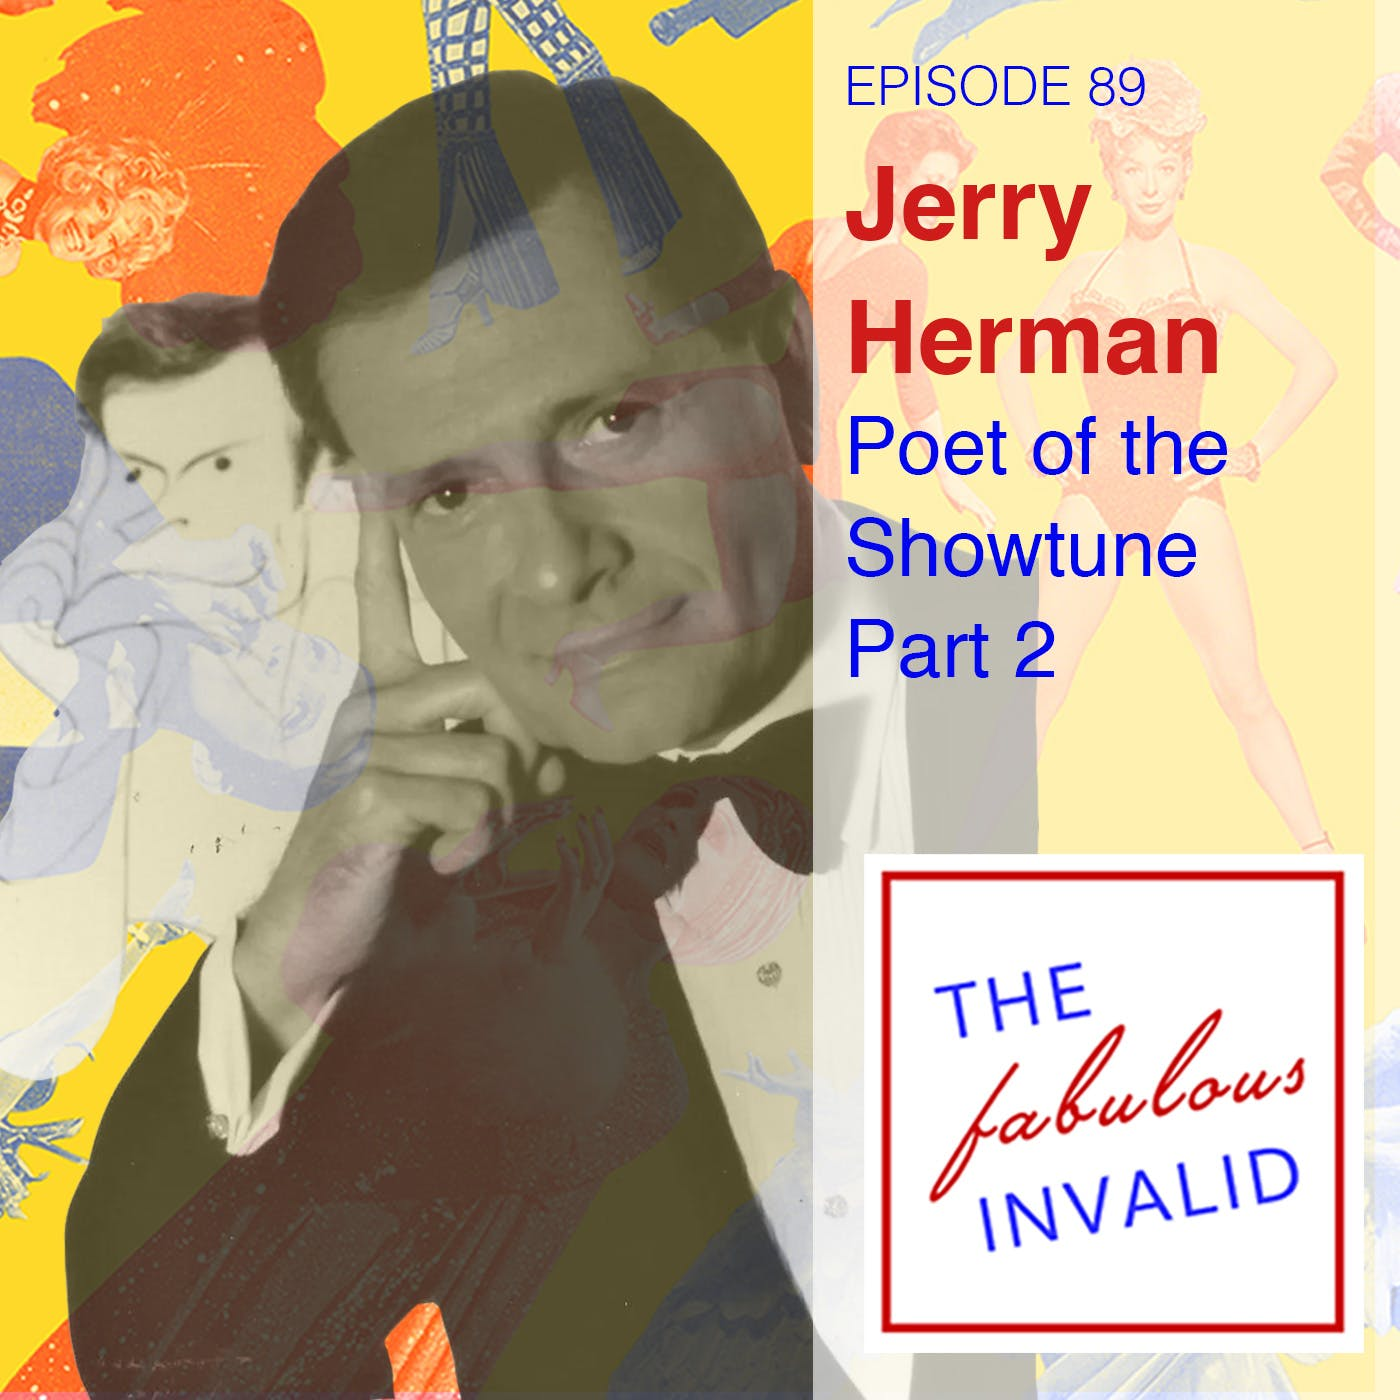 Episode 89: Jerry Herman: Poet of the Showtune, Part Two